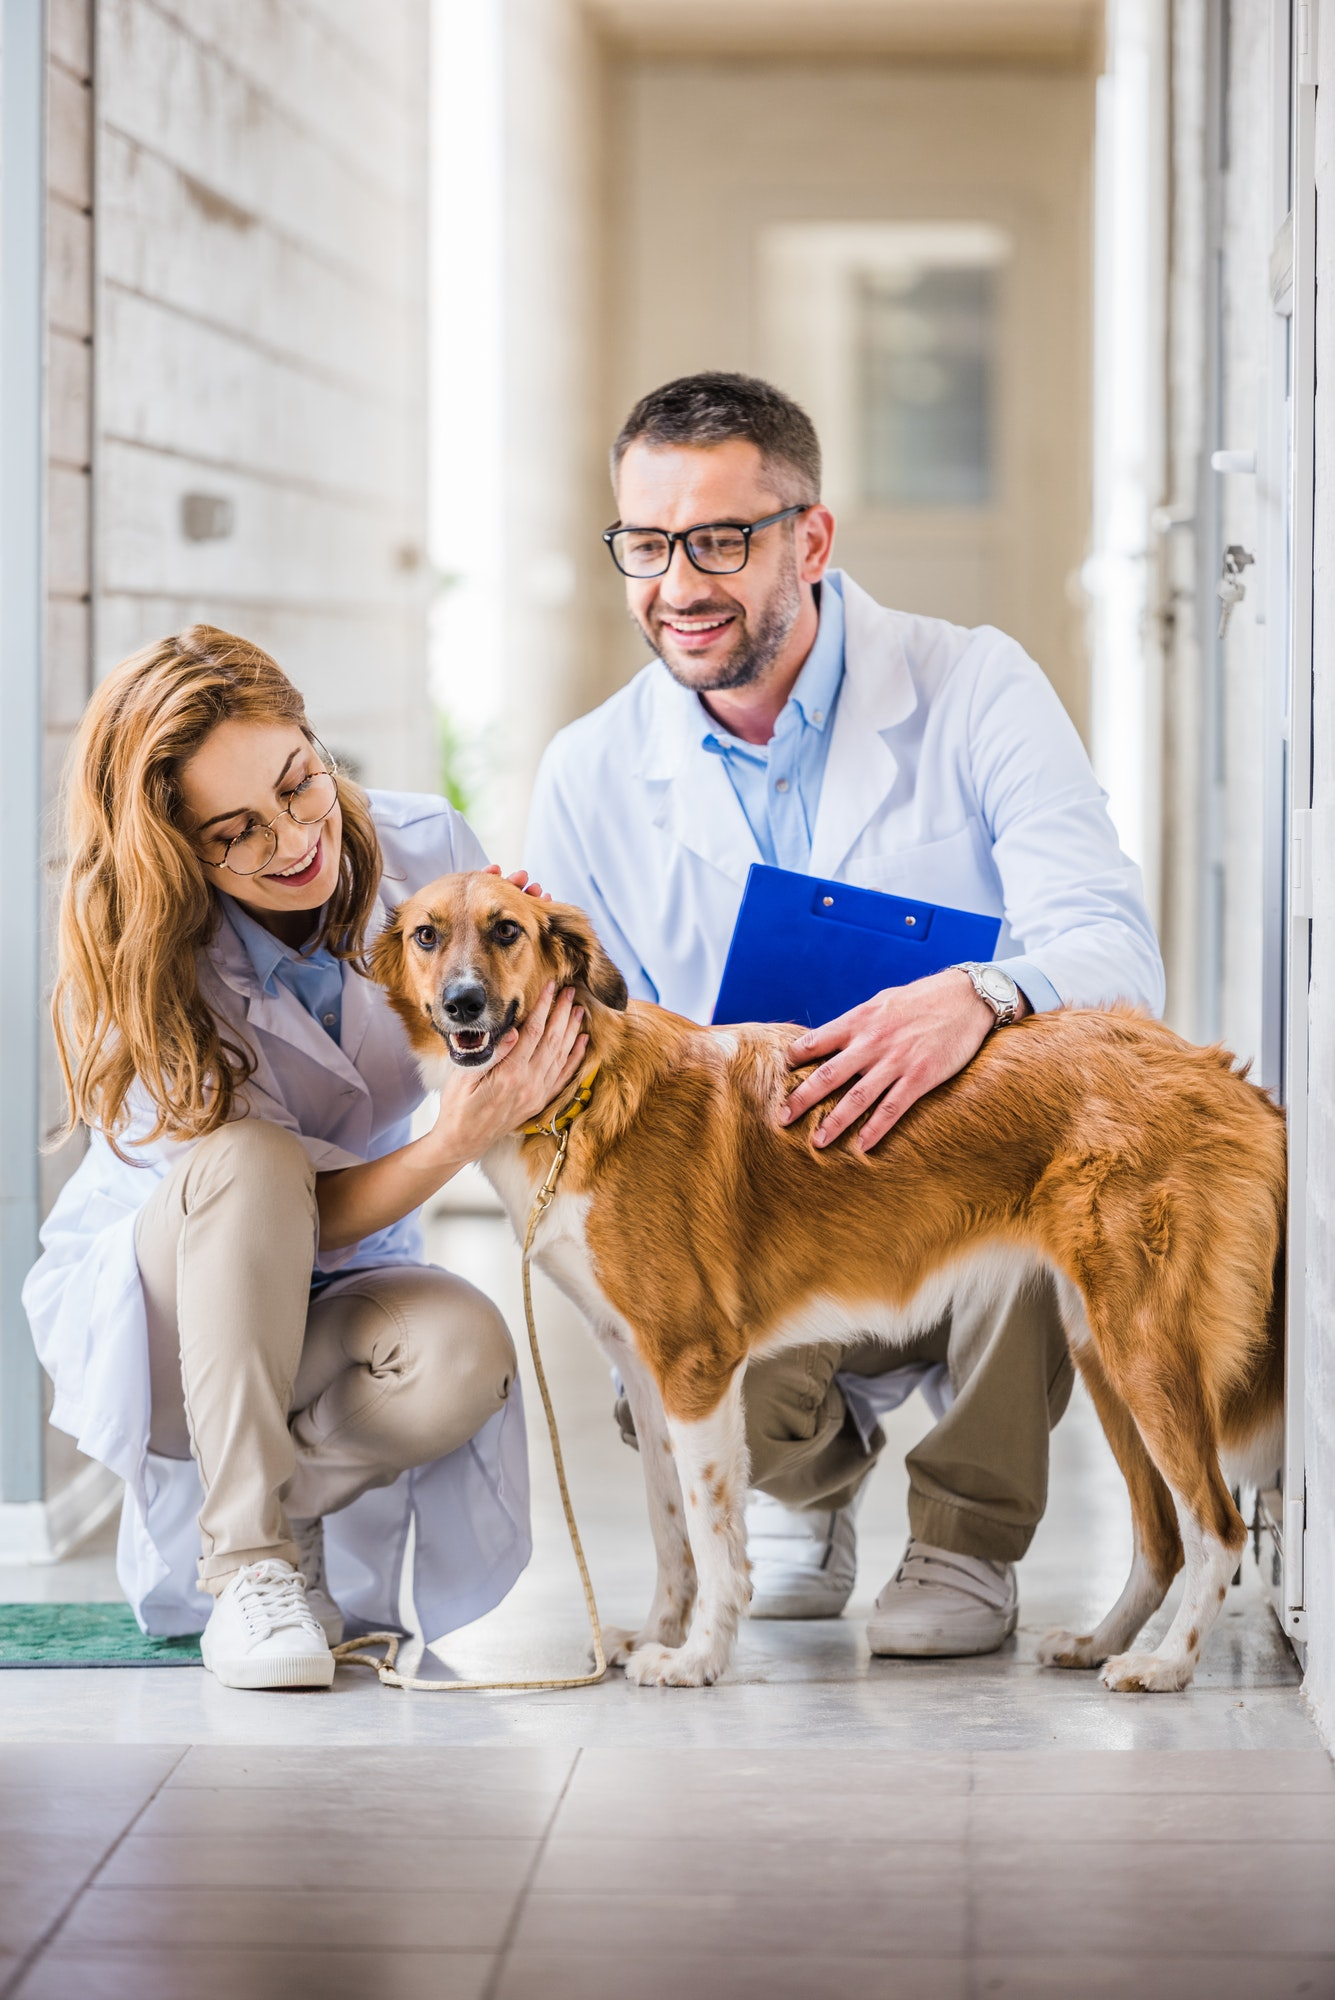 two veterinarians squatting and palming cute dog at veterinary clinic